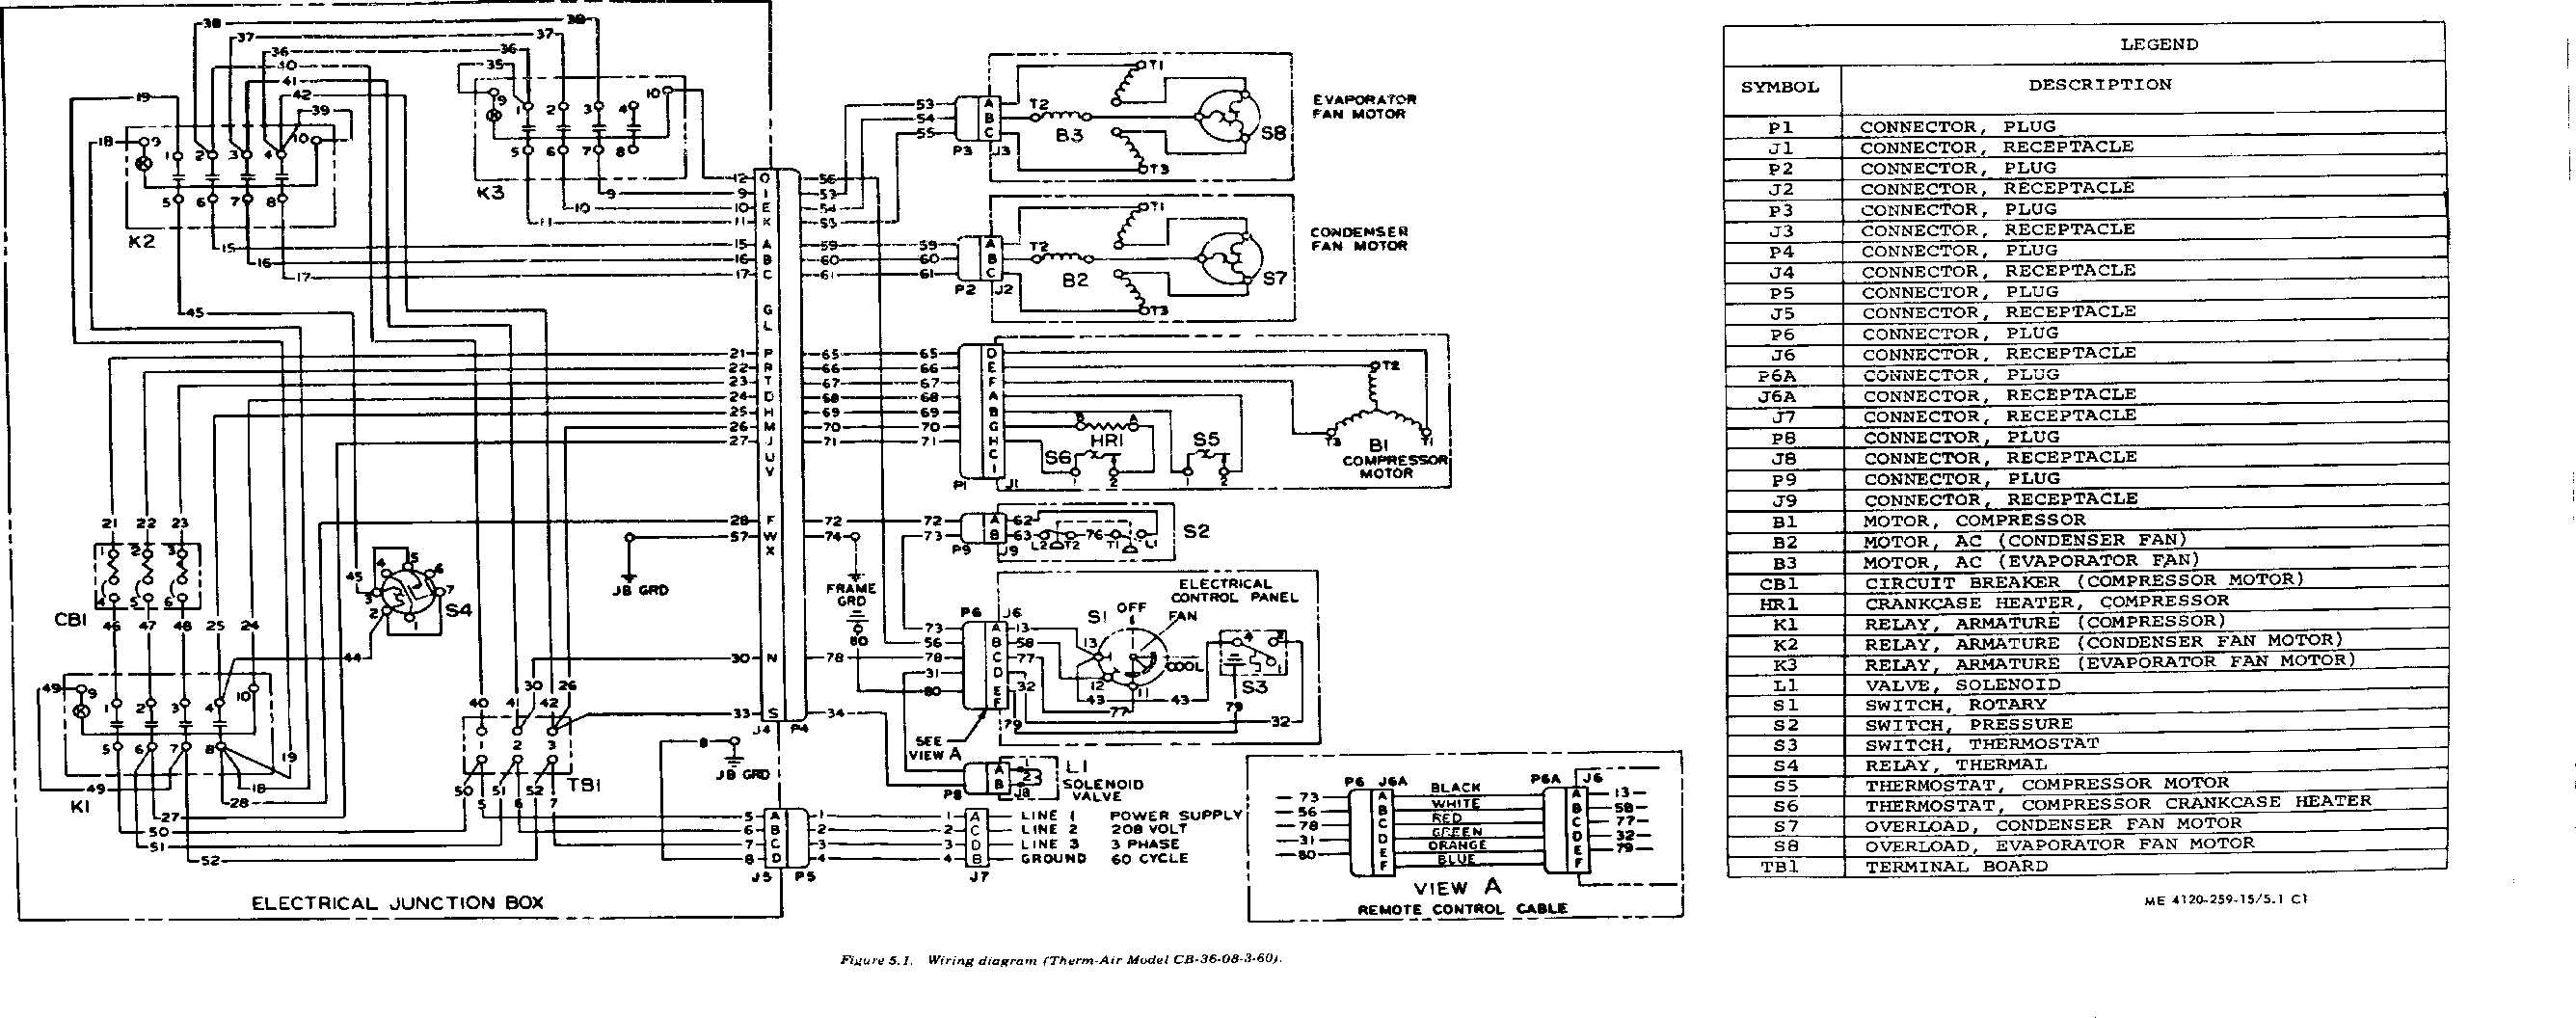 Usa Ac Schematic Wiring - Wiring Diagrams Ac Unit Wiring Schematic on